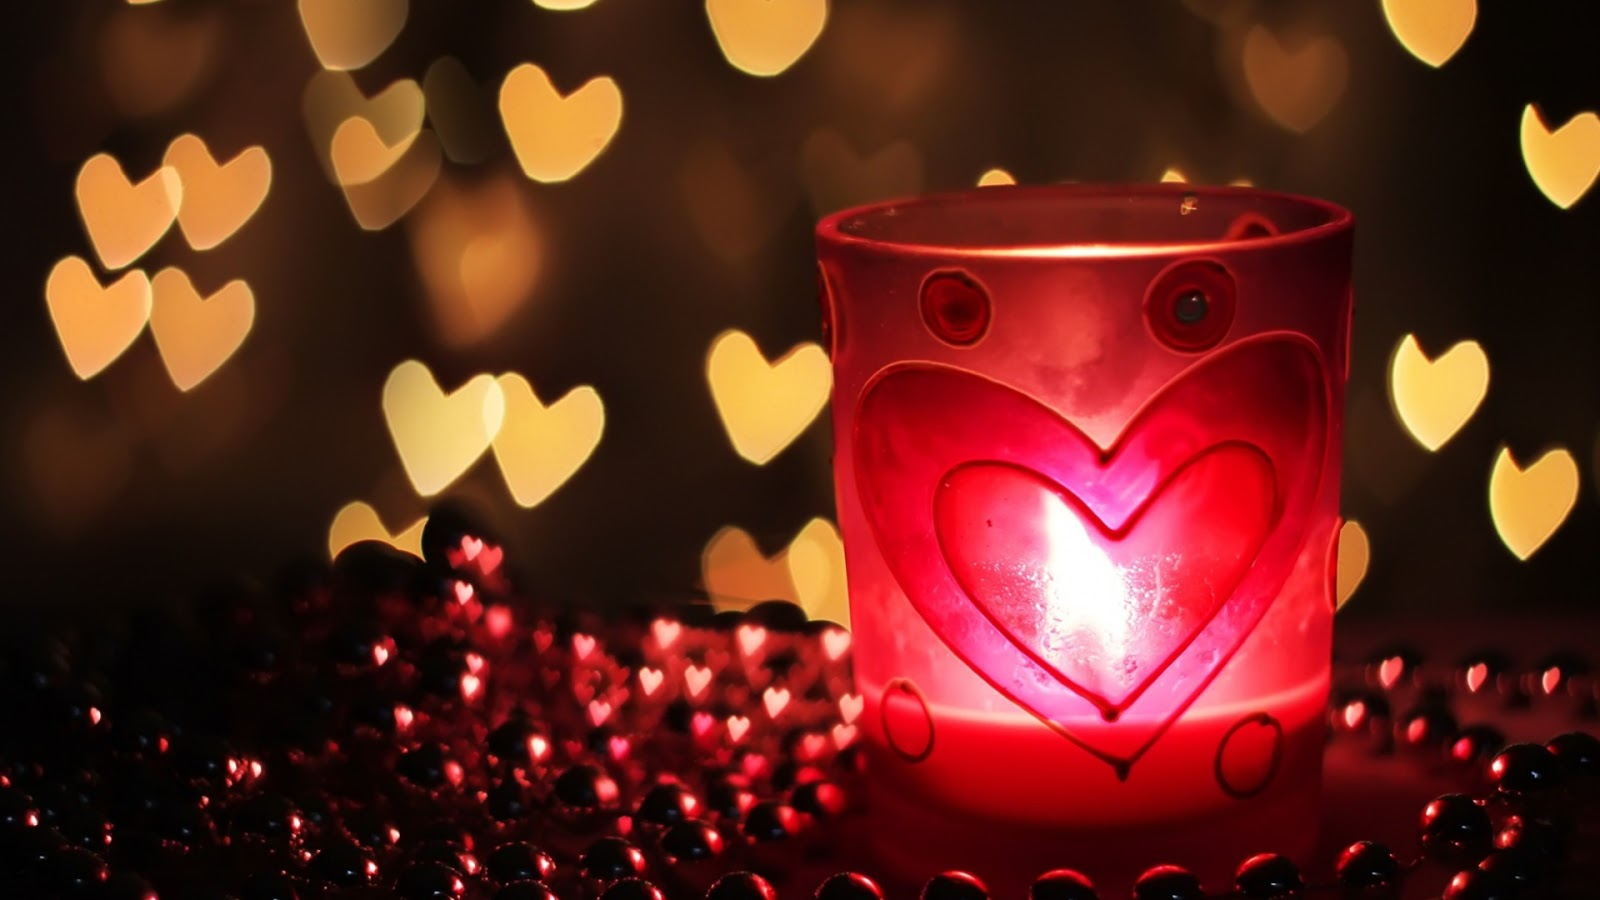 Candle Wallpaper HD for Android